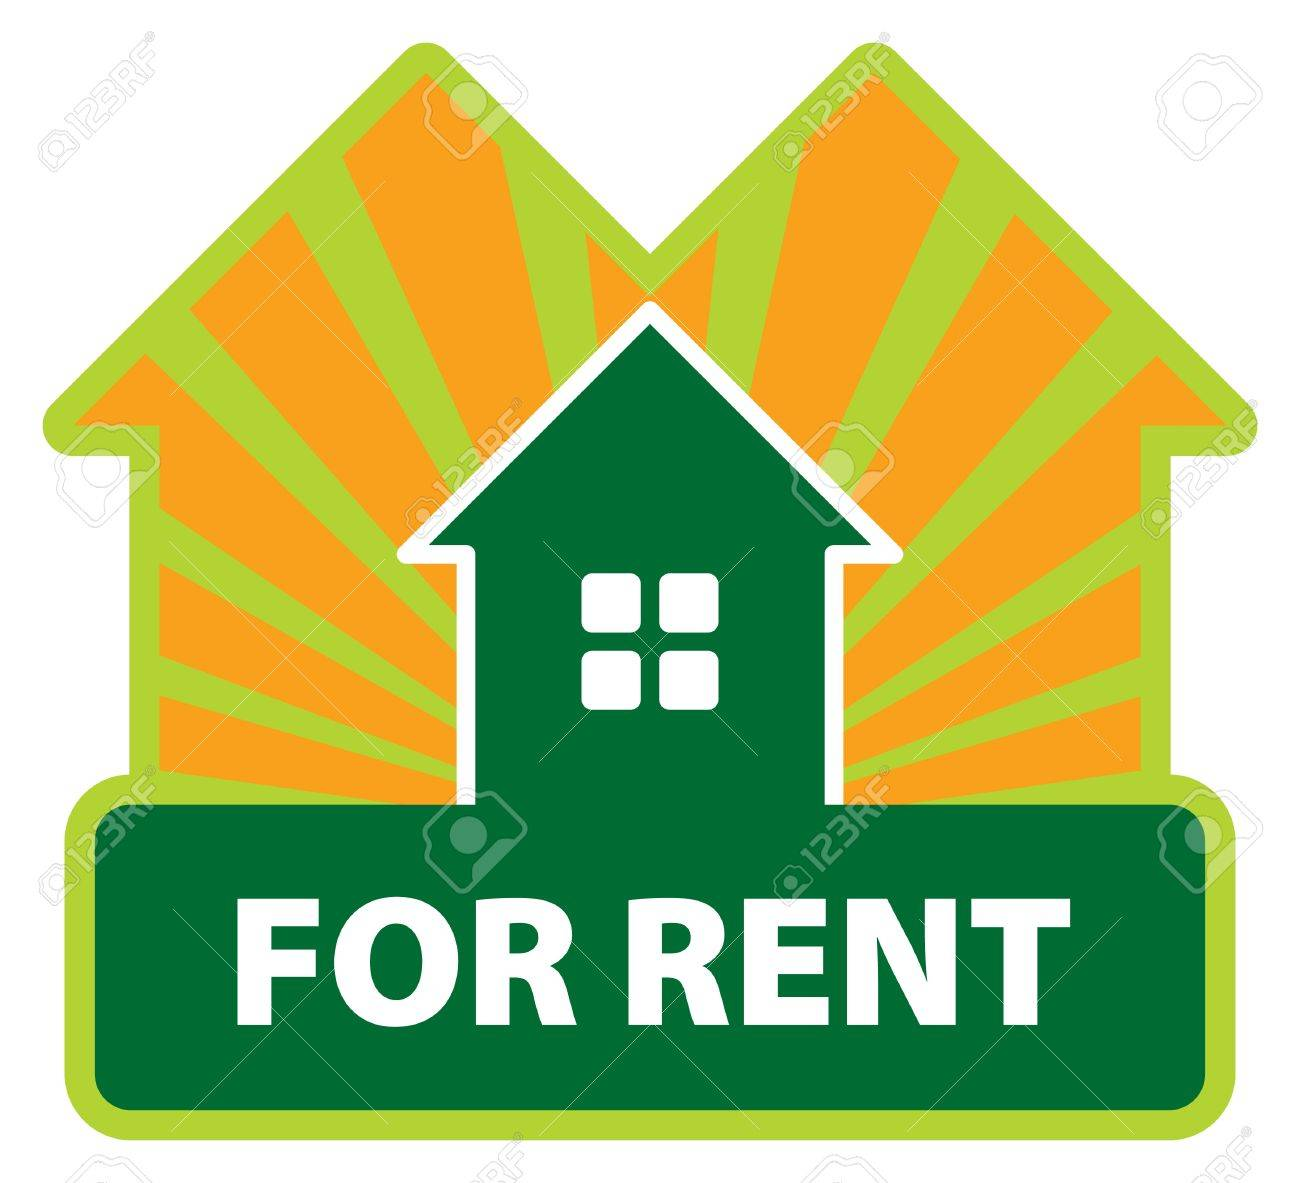 Color Label House For Rent Royalty Free Cliparts, Vectors, And ...